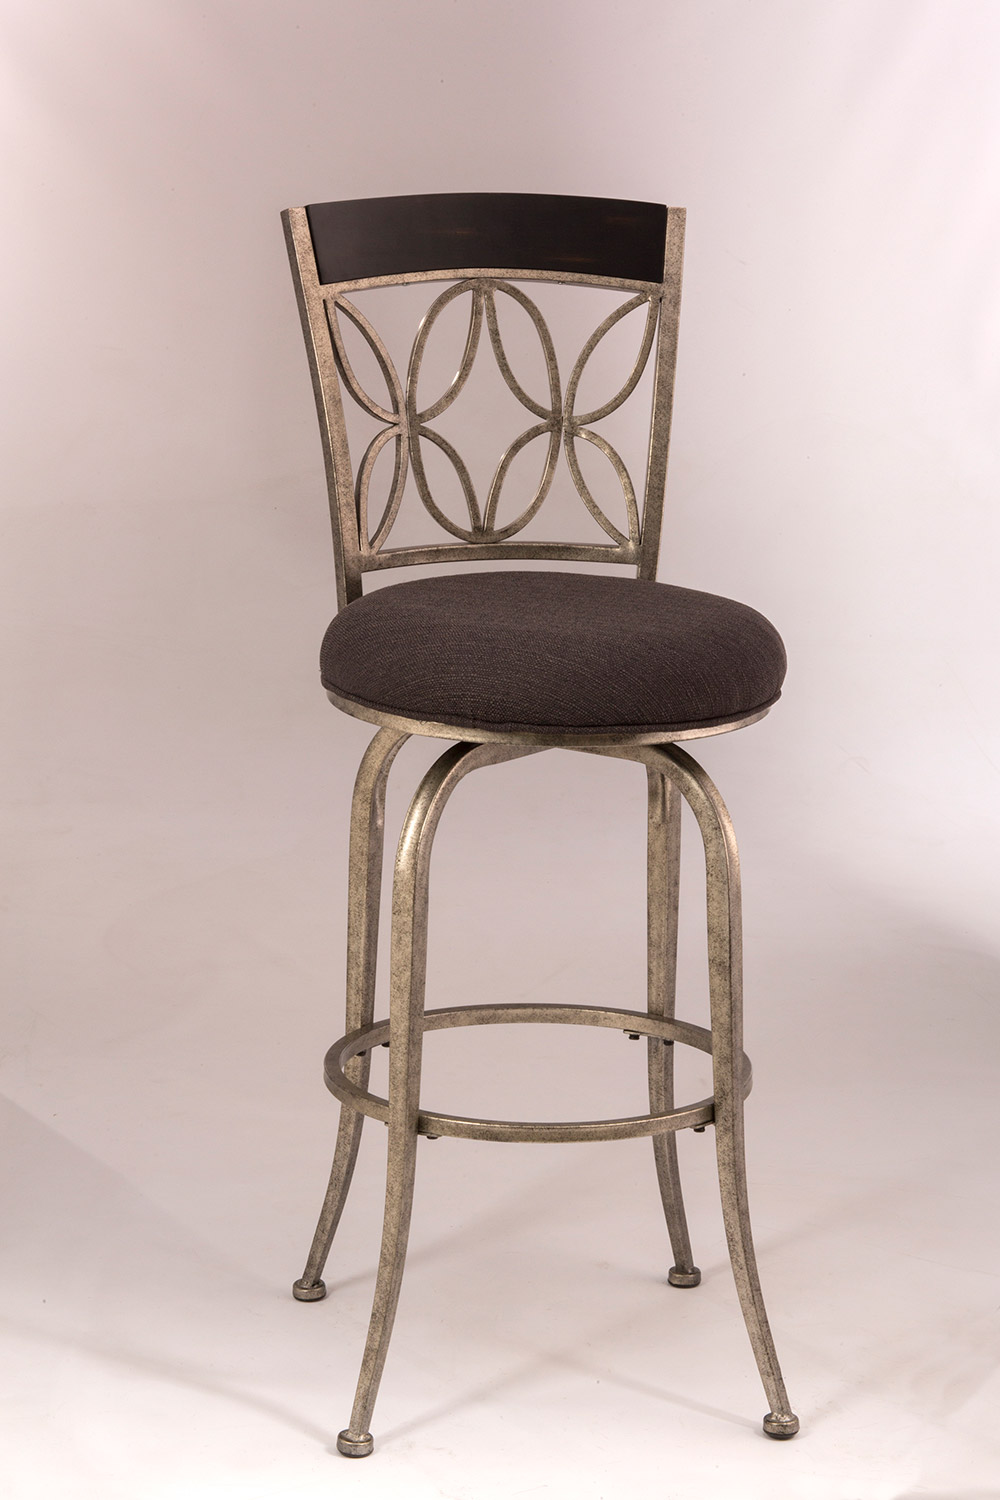 Hillsdale Goodwin Swivel Bar Stool PewterEspresso Wood  : HD 5693 830 from www.hillsdalefurnituremart.com size 1000 x 1500 jpeg 195kB